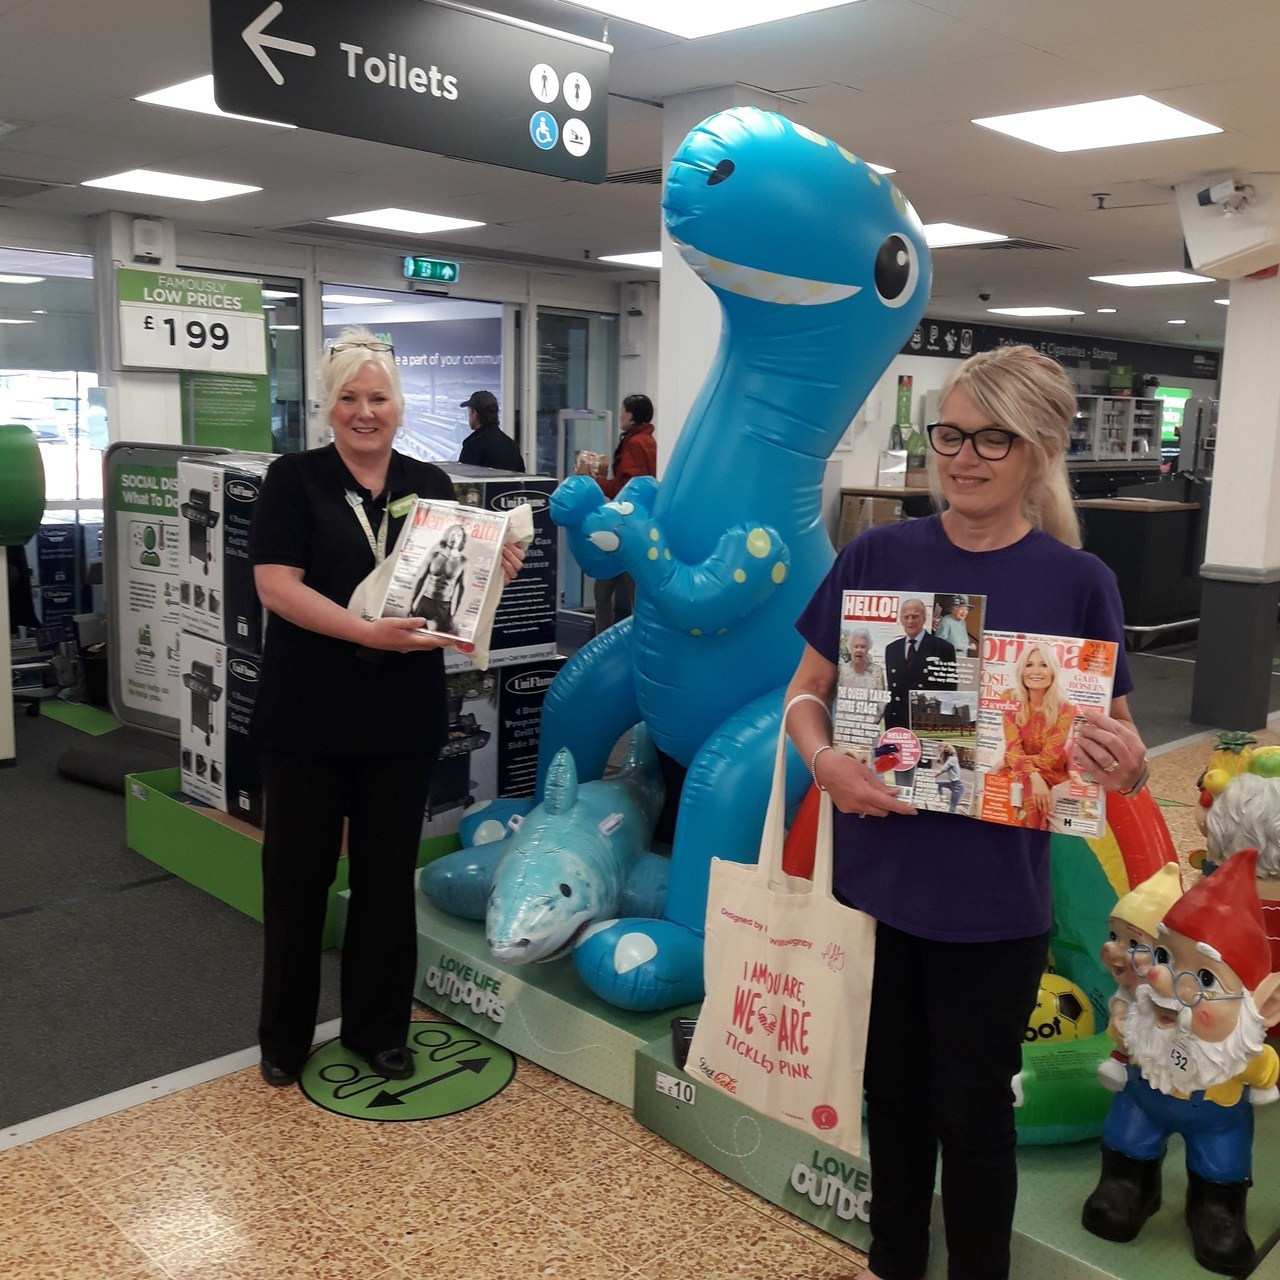 Local hospital accepts new reading materials  | Asda Barrow